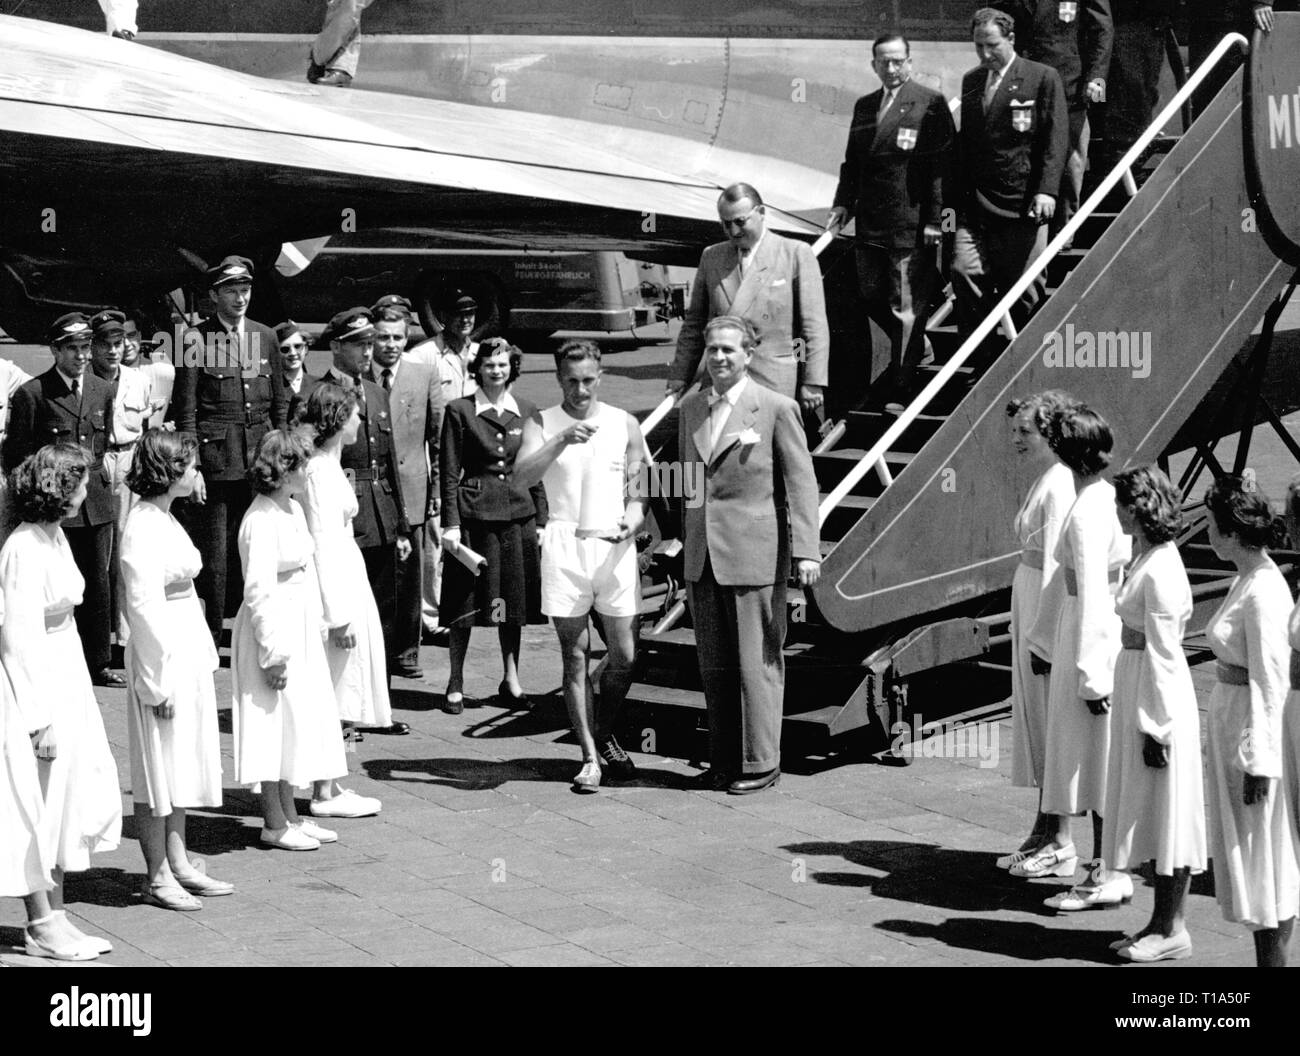 Olympic Games, 1972 Munich, arrival of the Olympic fire, airport Riem, Munich, 1972, Additional-Rights-Clearance-Info-Not-Available - Stock Image